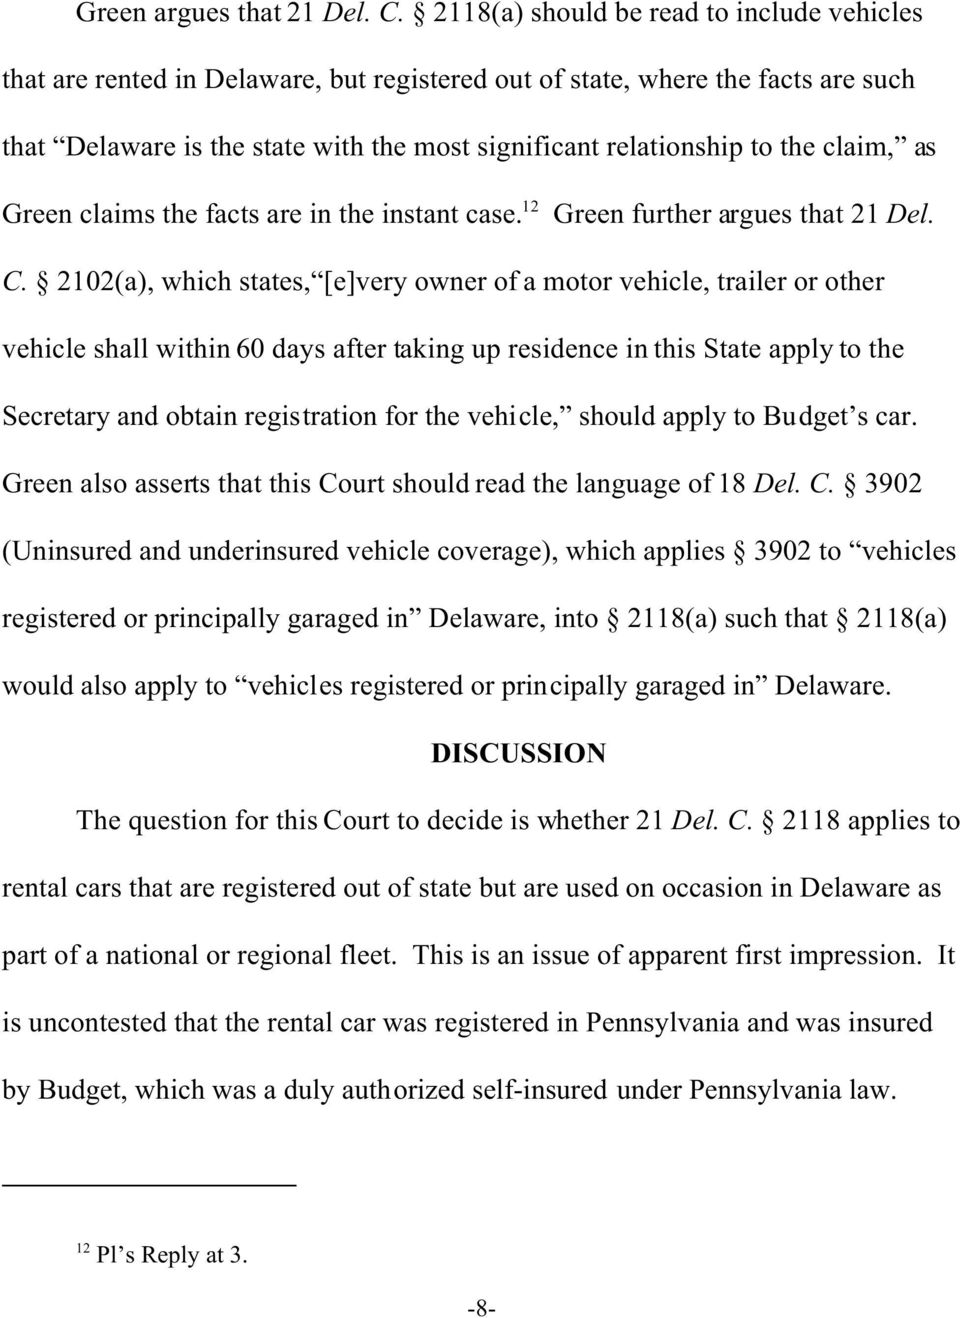 claim, as Green claims the facts are in the instant case. 12 Green further argues that 21 Del. C.